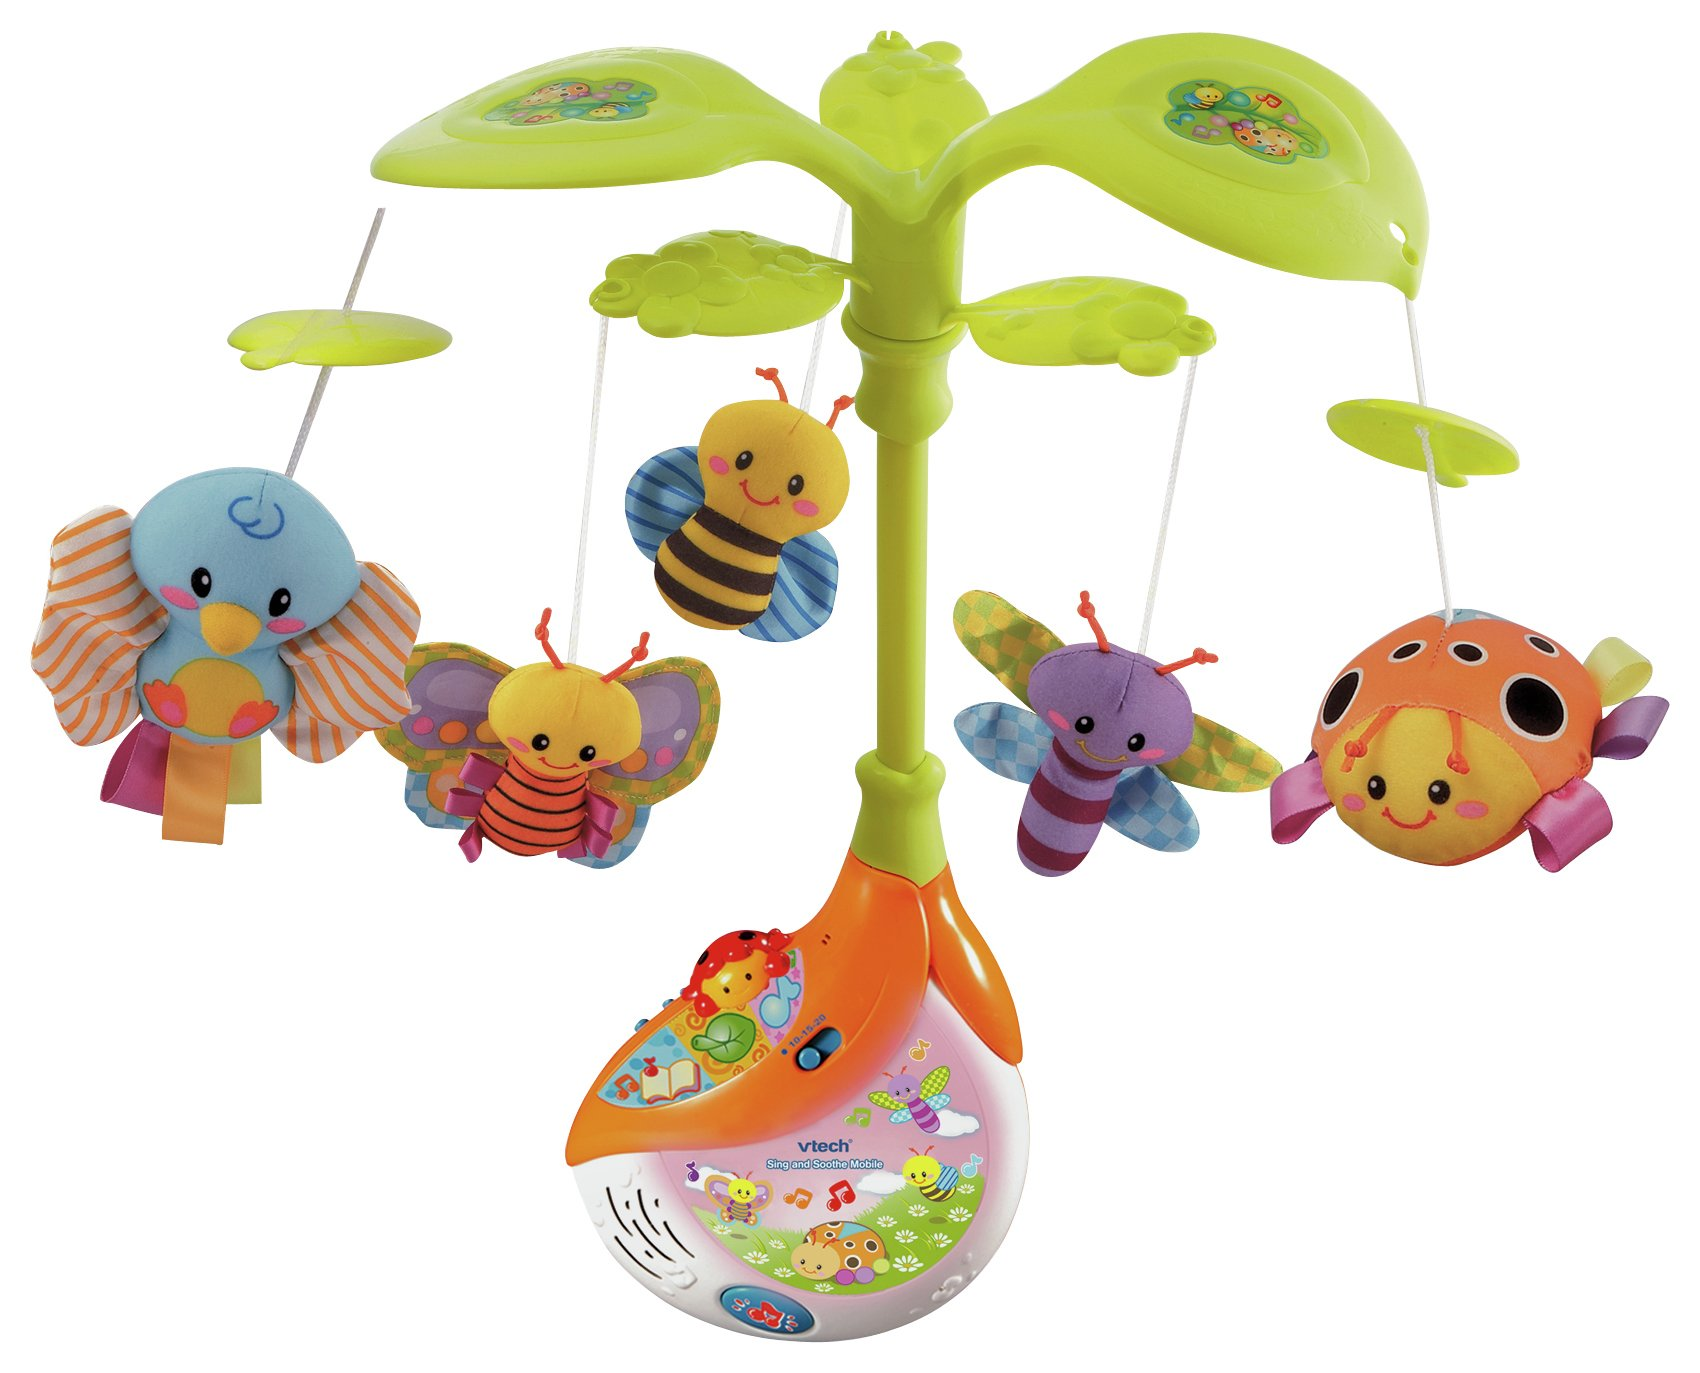 'Vtech - Sing And Soothe Musical Baby - Cot Mobile